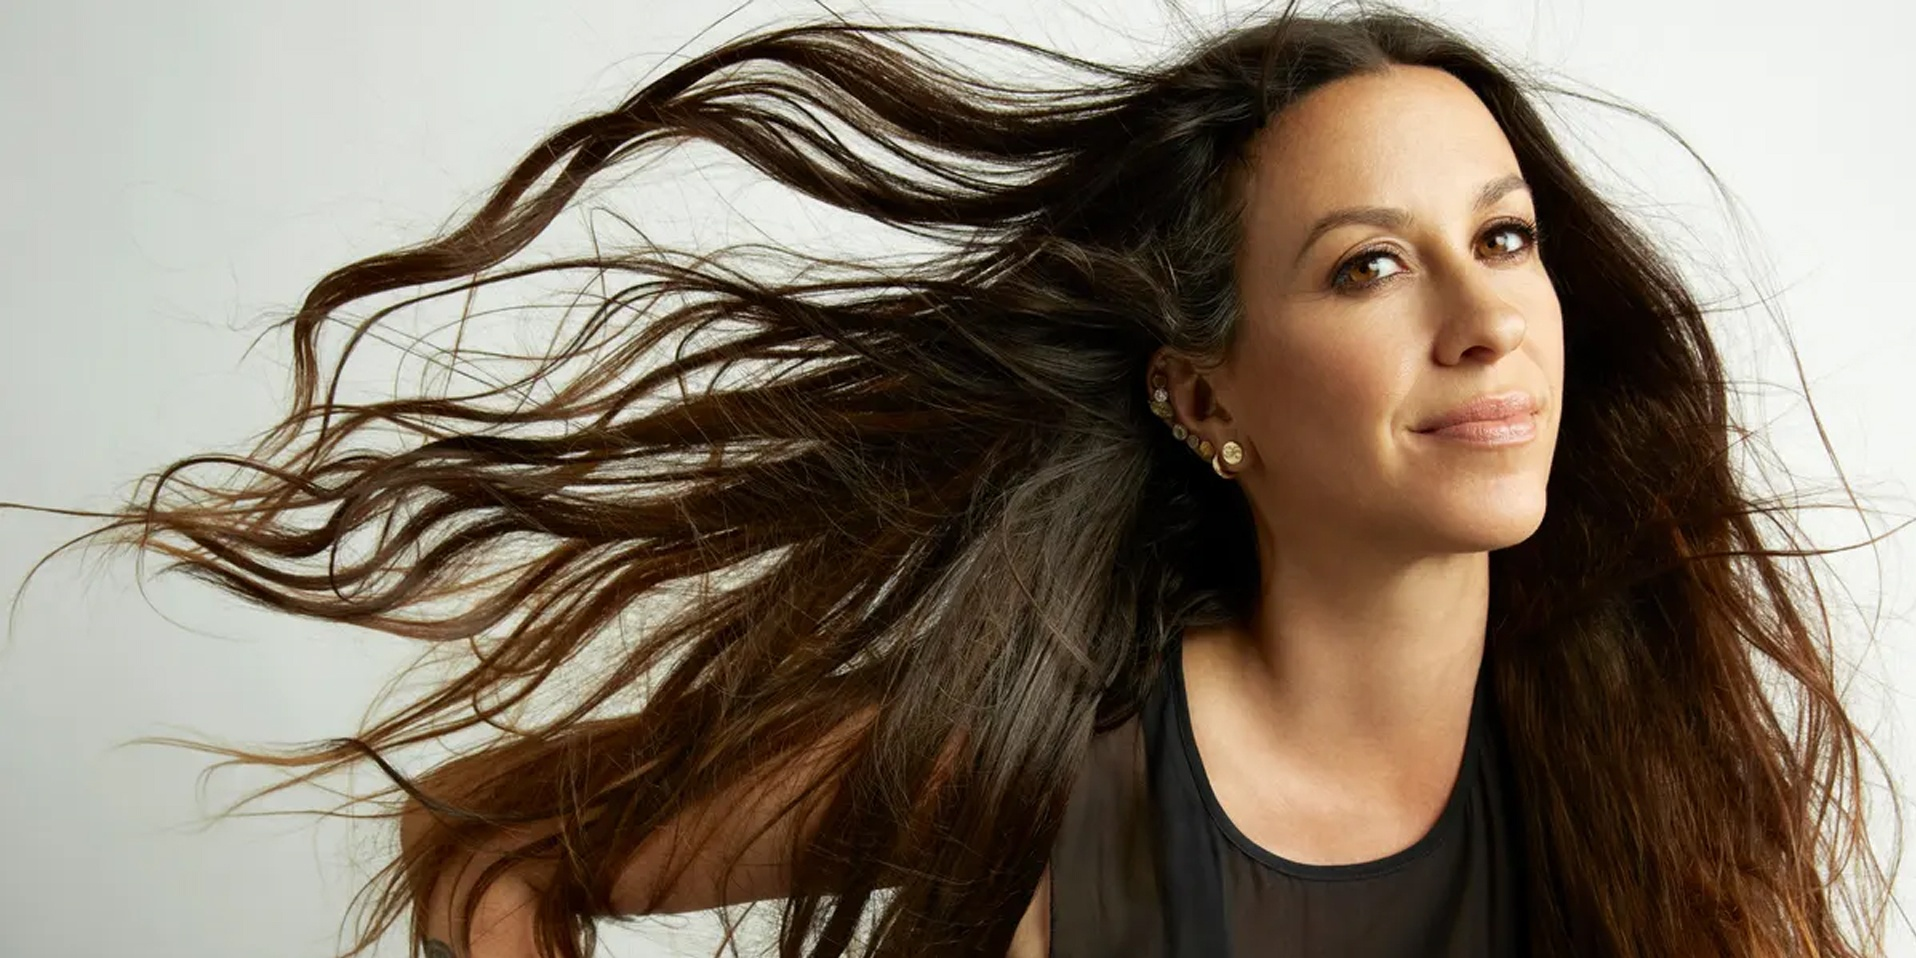 Alanis Morissette's 2-day Manila concerts postponed to late 2021